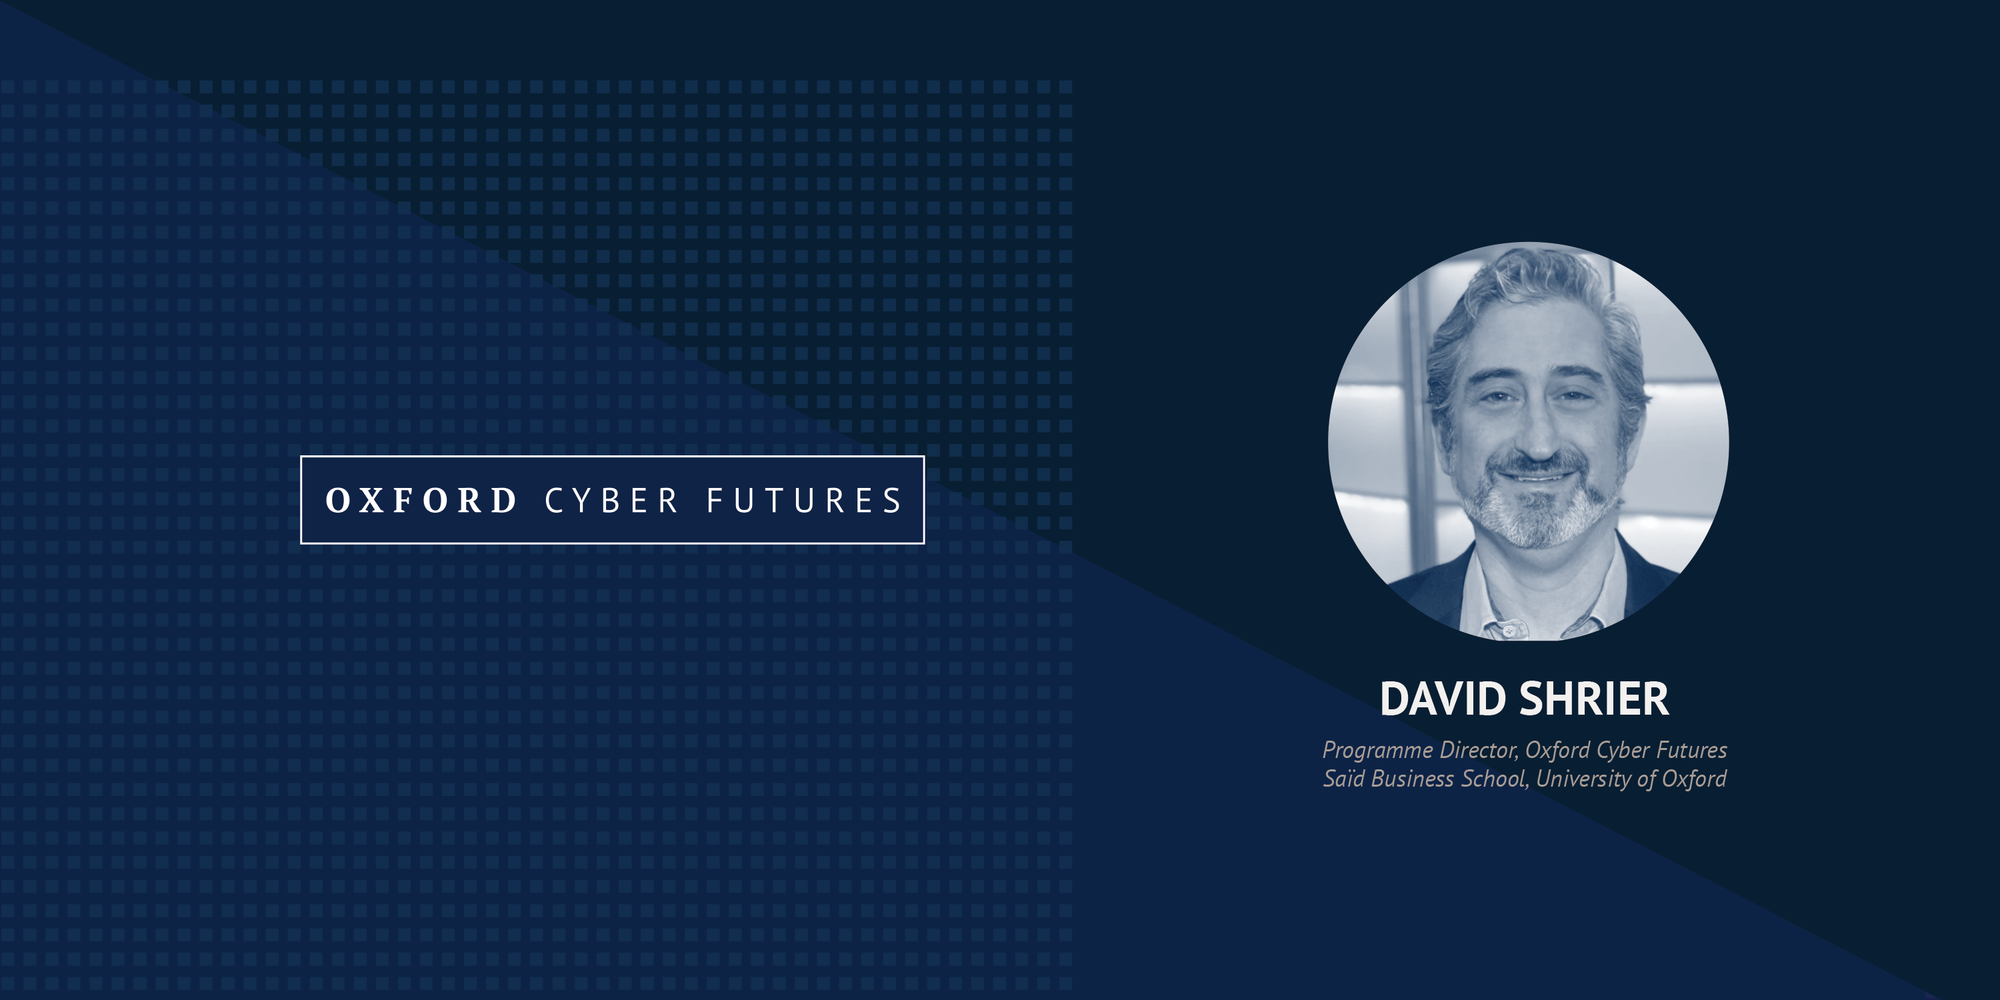 Introducing the Oxford Cyber Minute Video Series with David Shrier, Programme Director